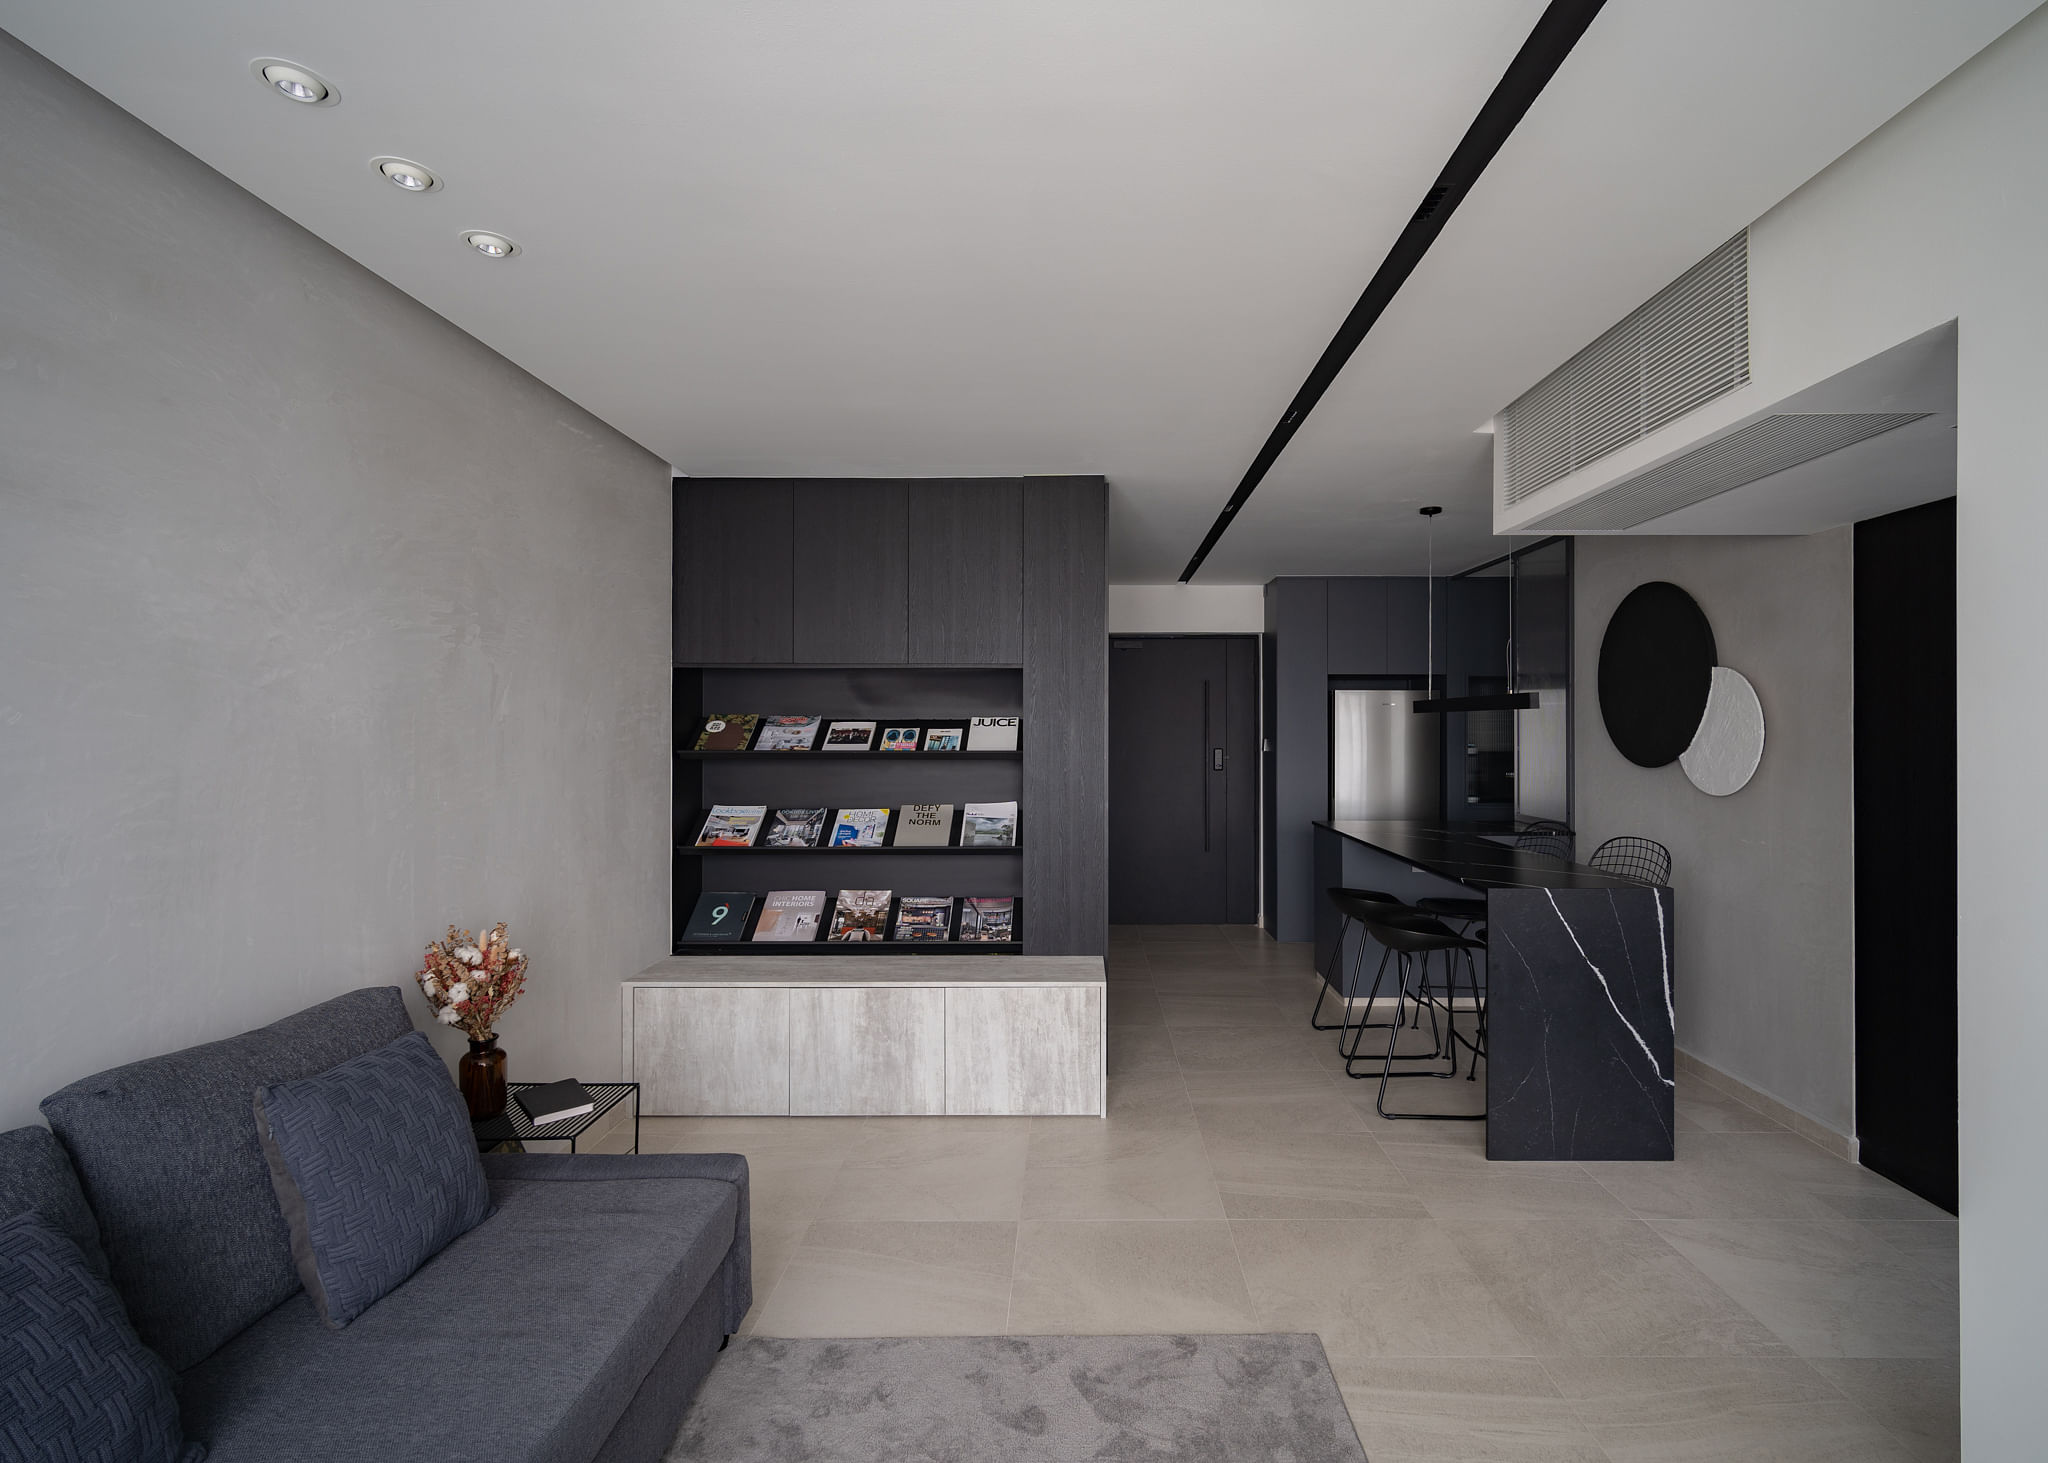 House Tour: A minimalist, dark-hued apartment with